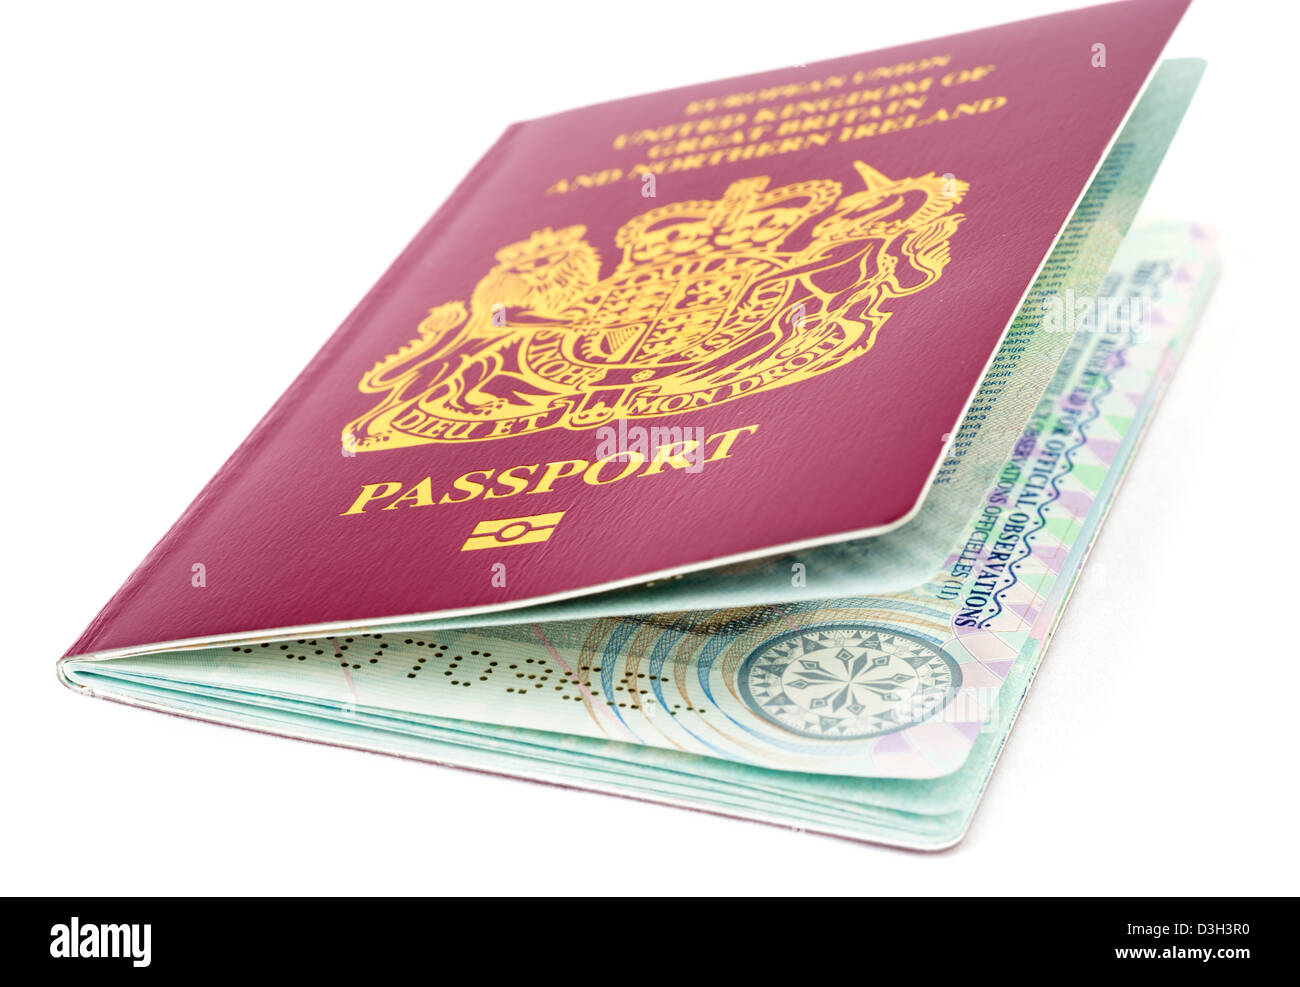 A 2013 European Union biometric passport for the United Kingdom - Stock Image